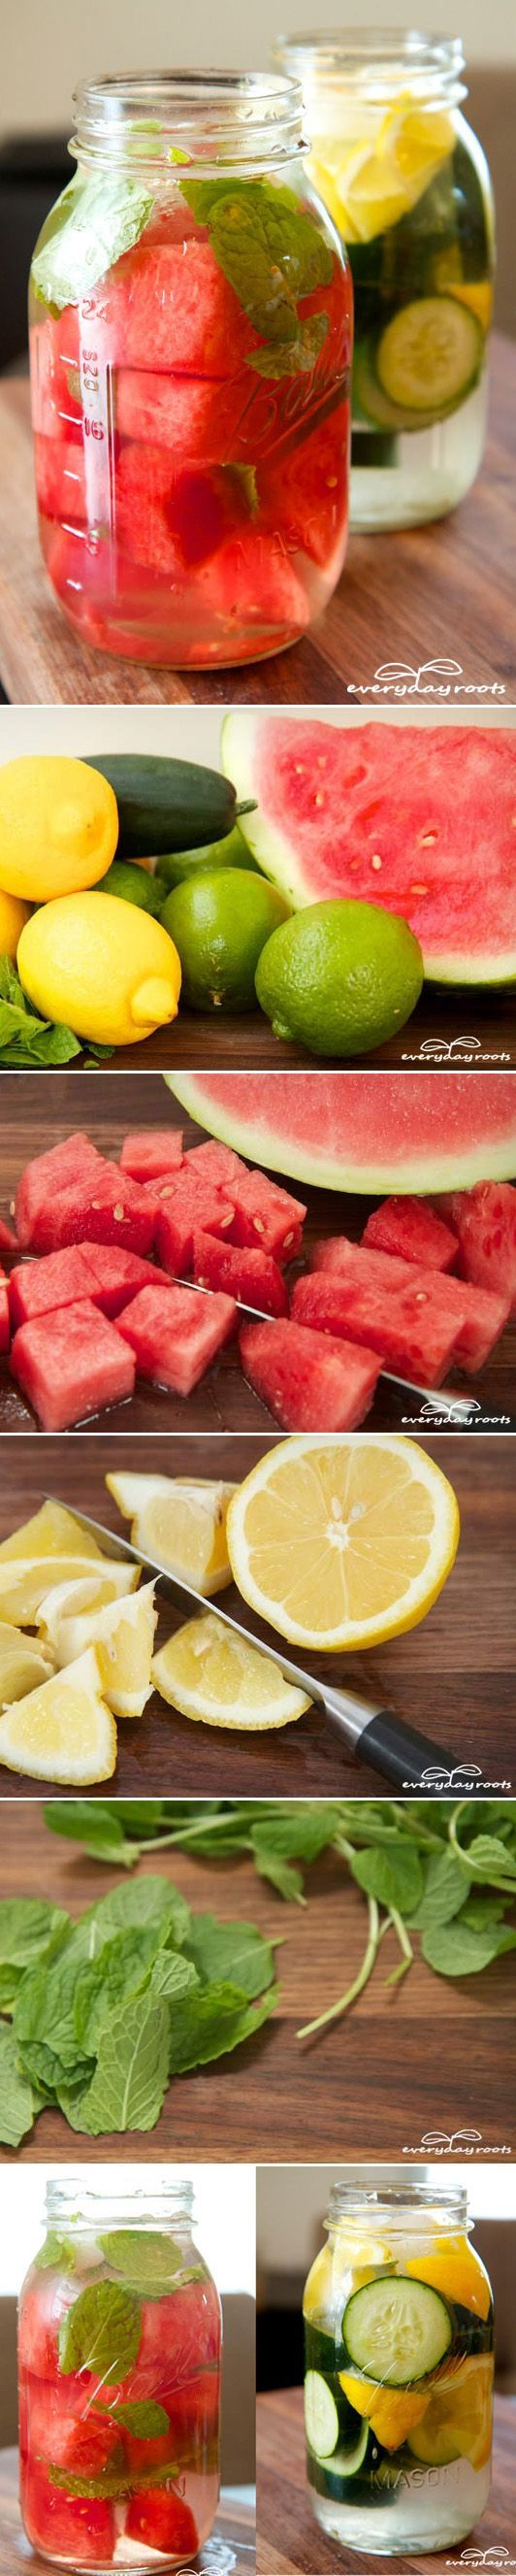 Detox Drinks To Lose Weight: Make Your Own Detox Drink for Daily Enjoyment  Cleansing. Recipe. Included: Watermelon/cucumber, lemon/lime, mint leaves, and water #weightloss #weightloss